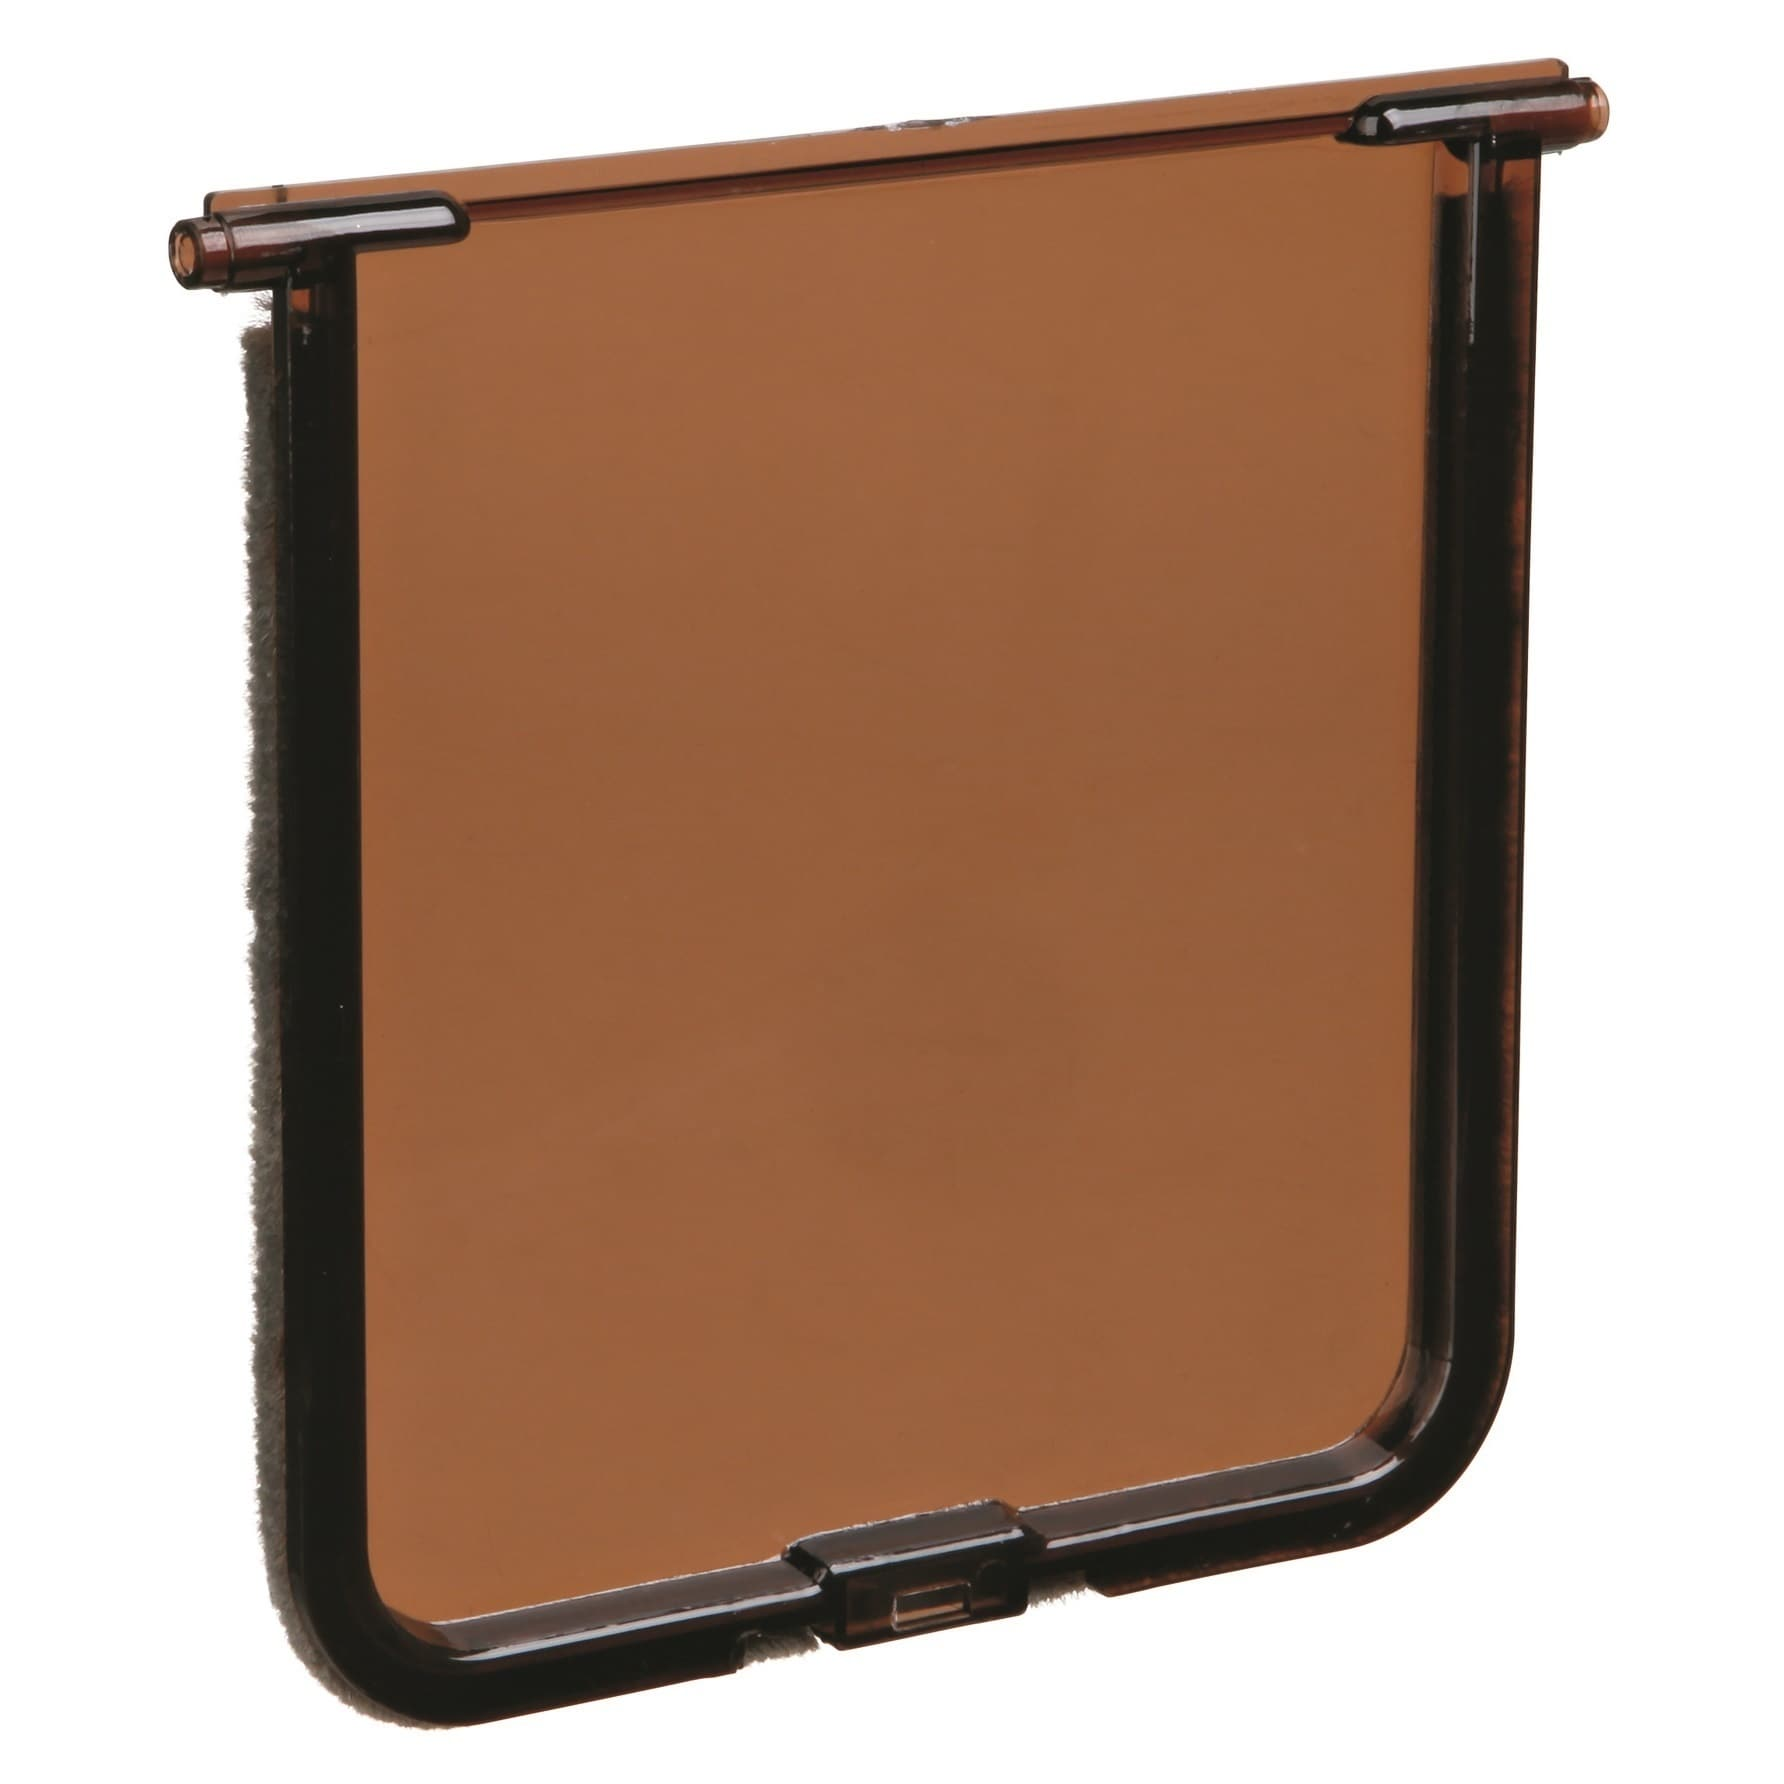 Trixie Replacement Pet Door Flap, Brown